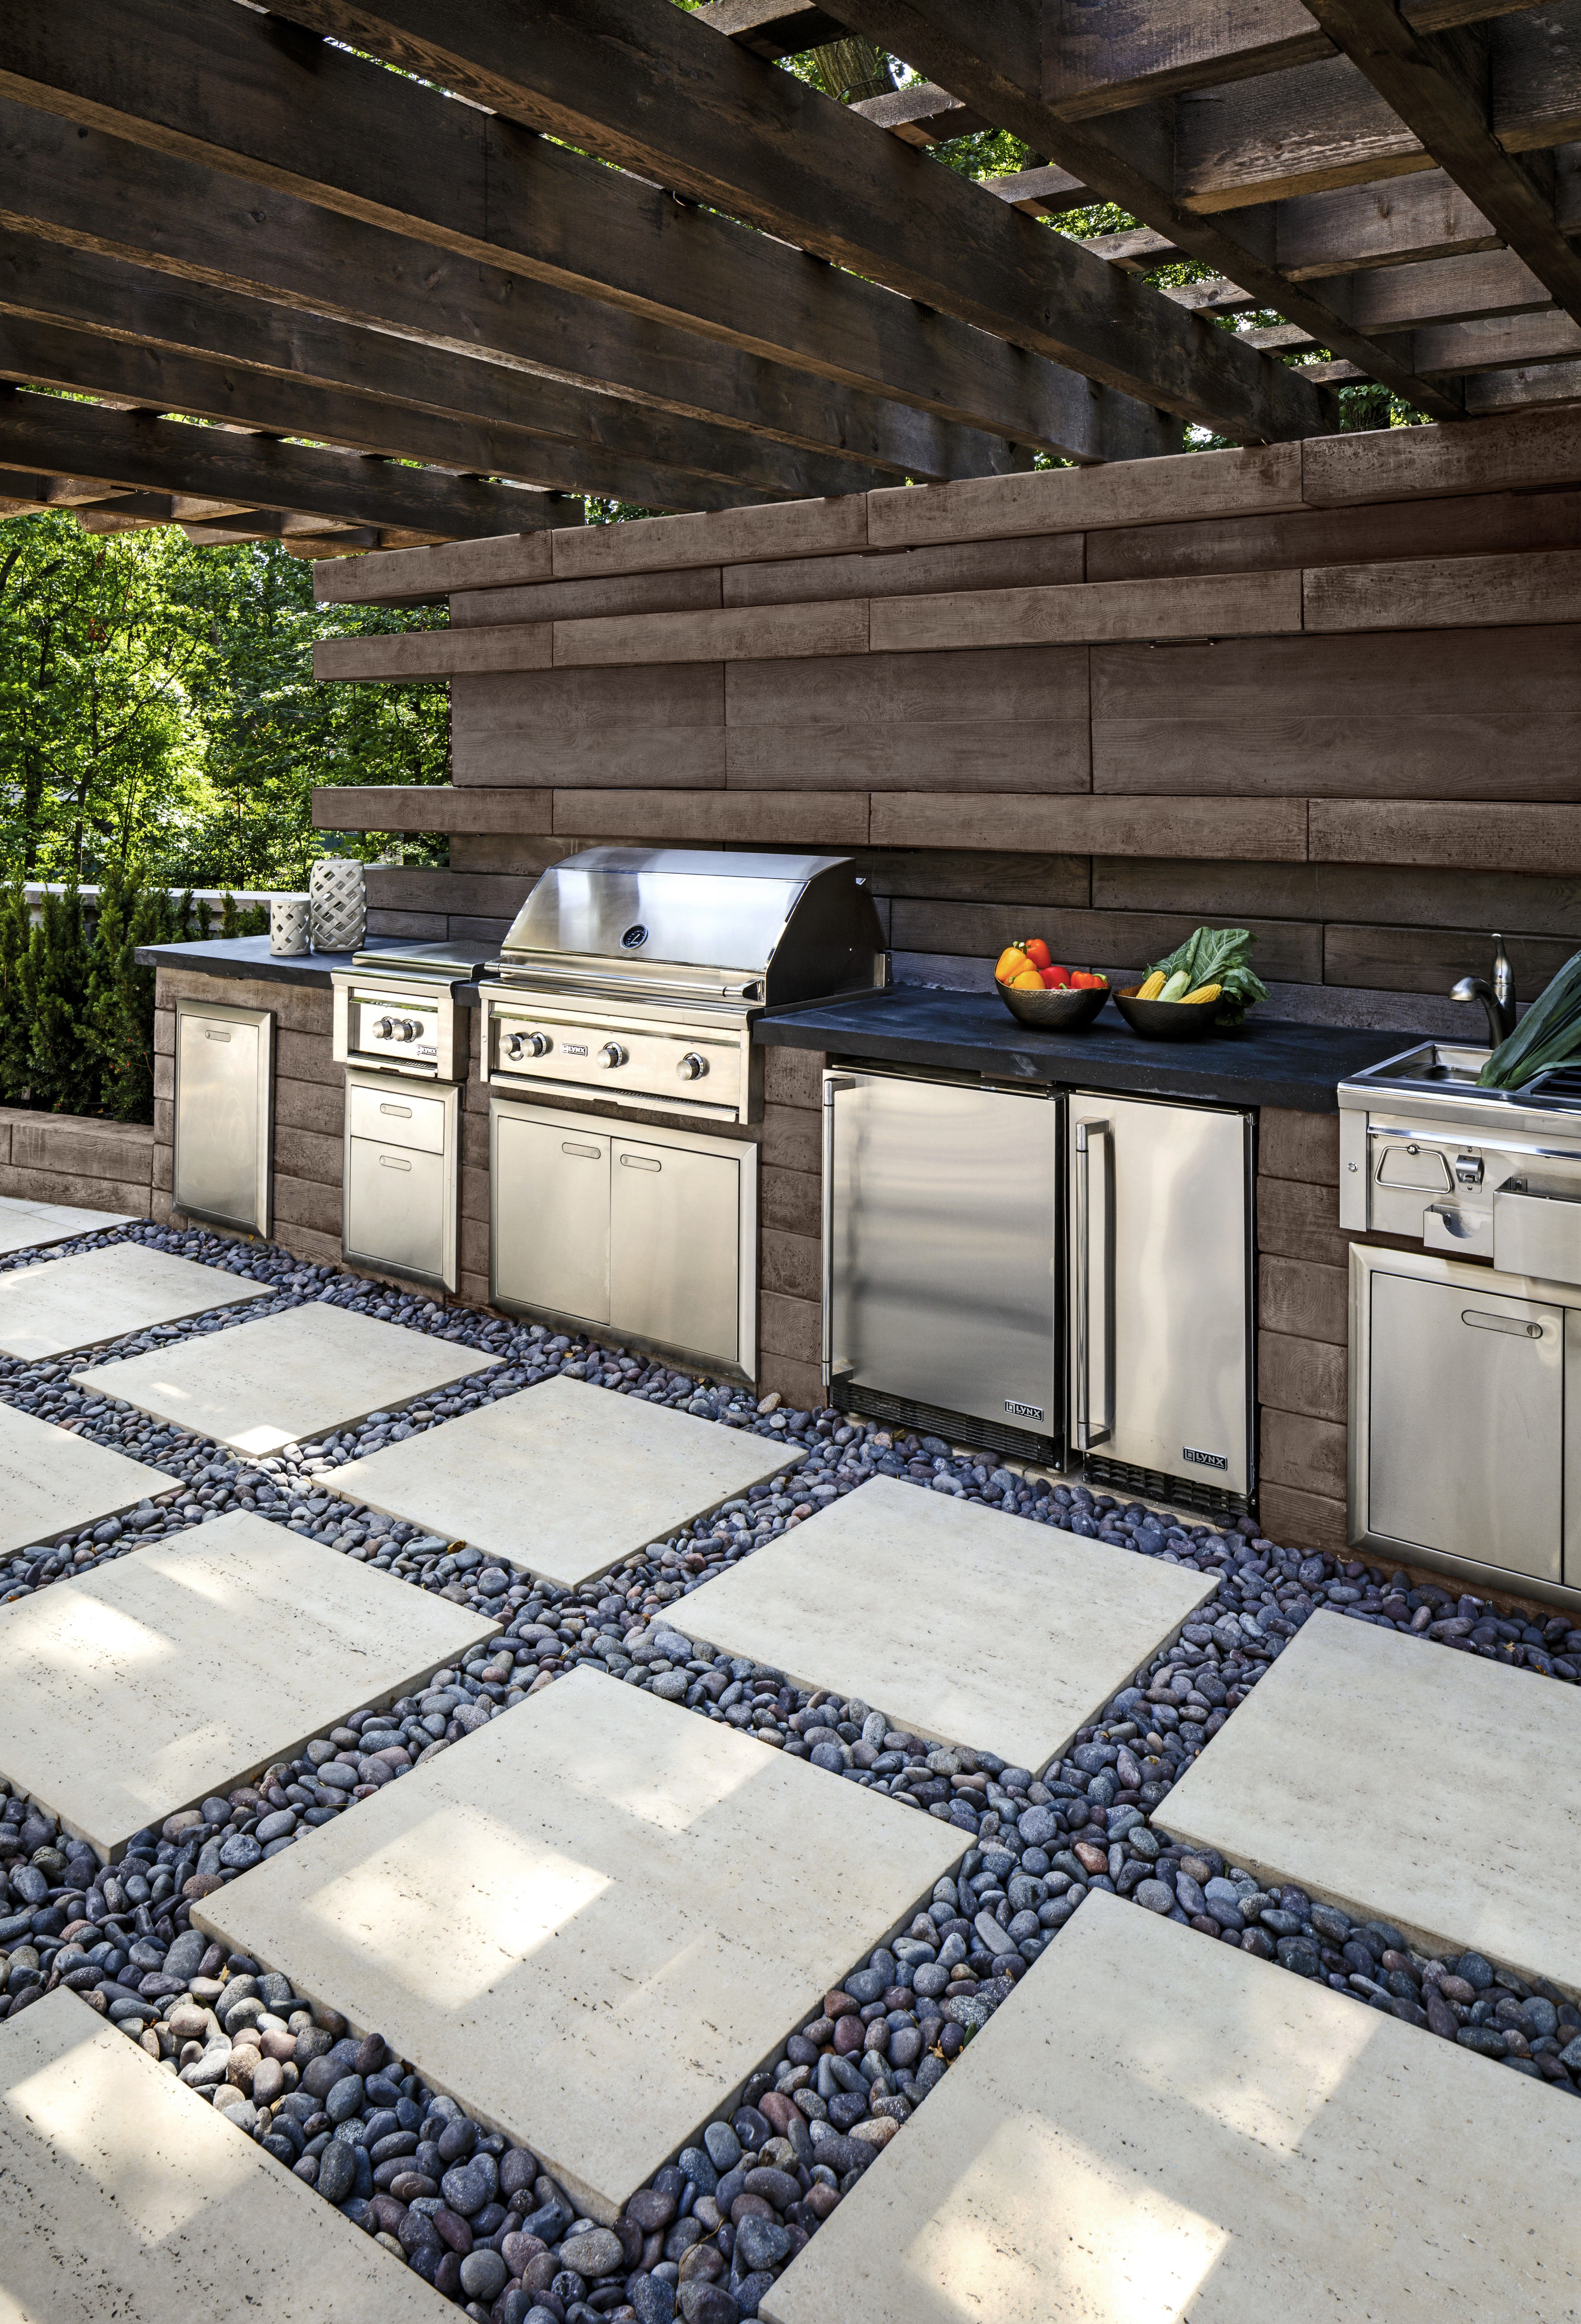 Outdoor Kitchen Designing The Perfect Backyard Cooking Station Covered Outdoor Kitchens Modern Outdoor Kitchen Luxury Outdoor Kitchen